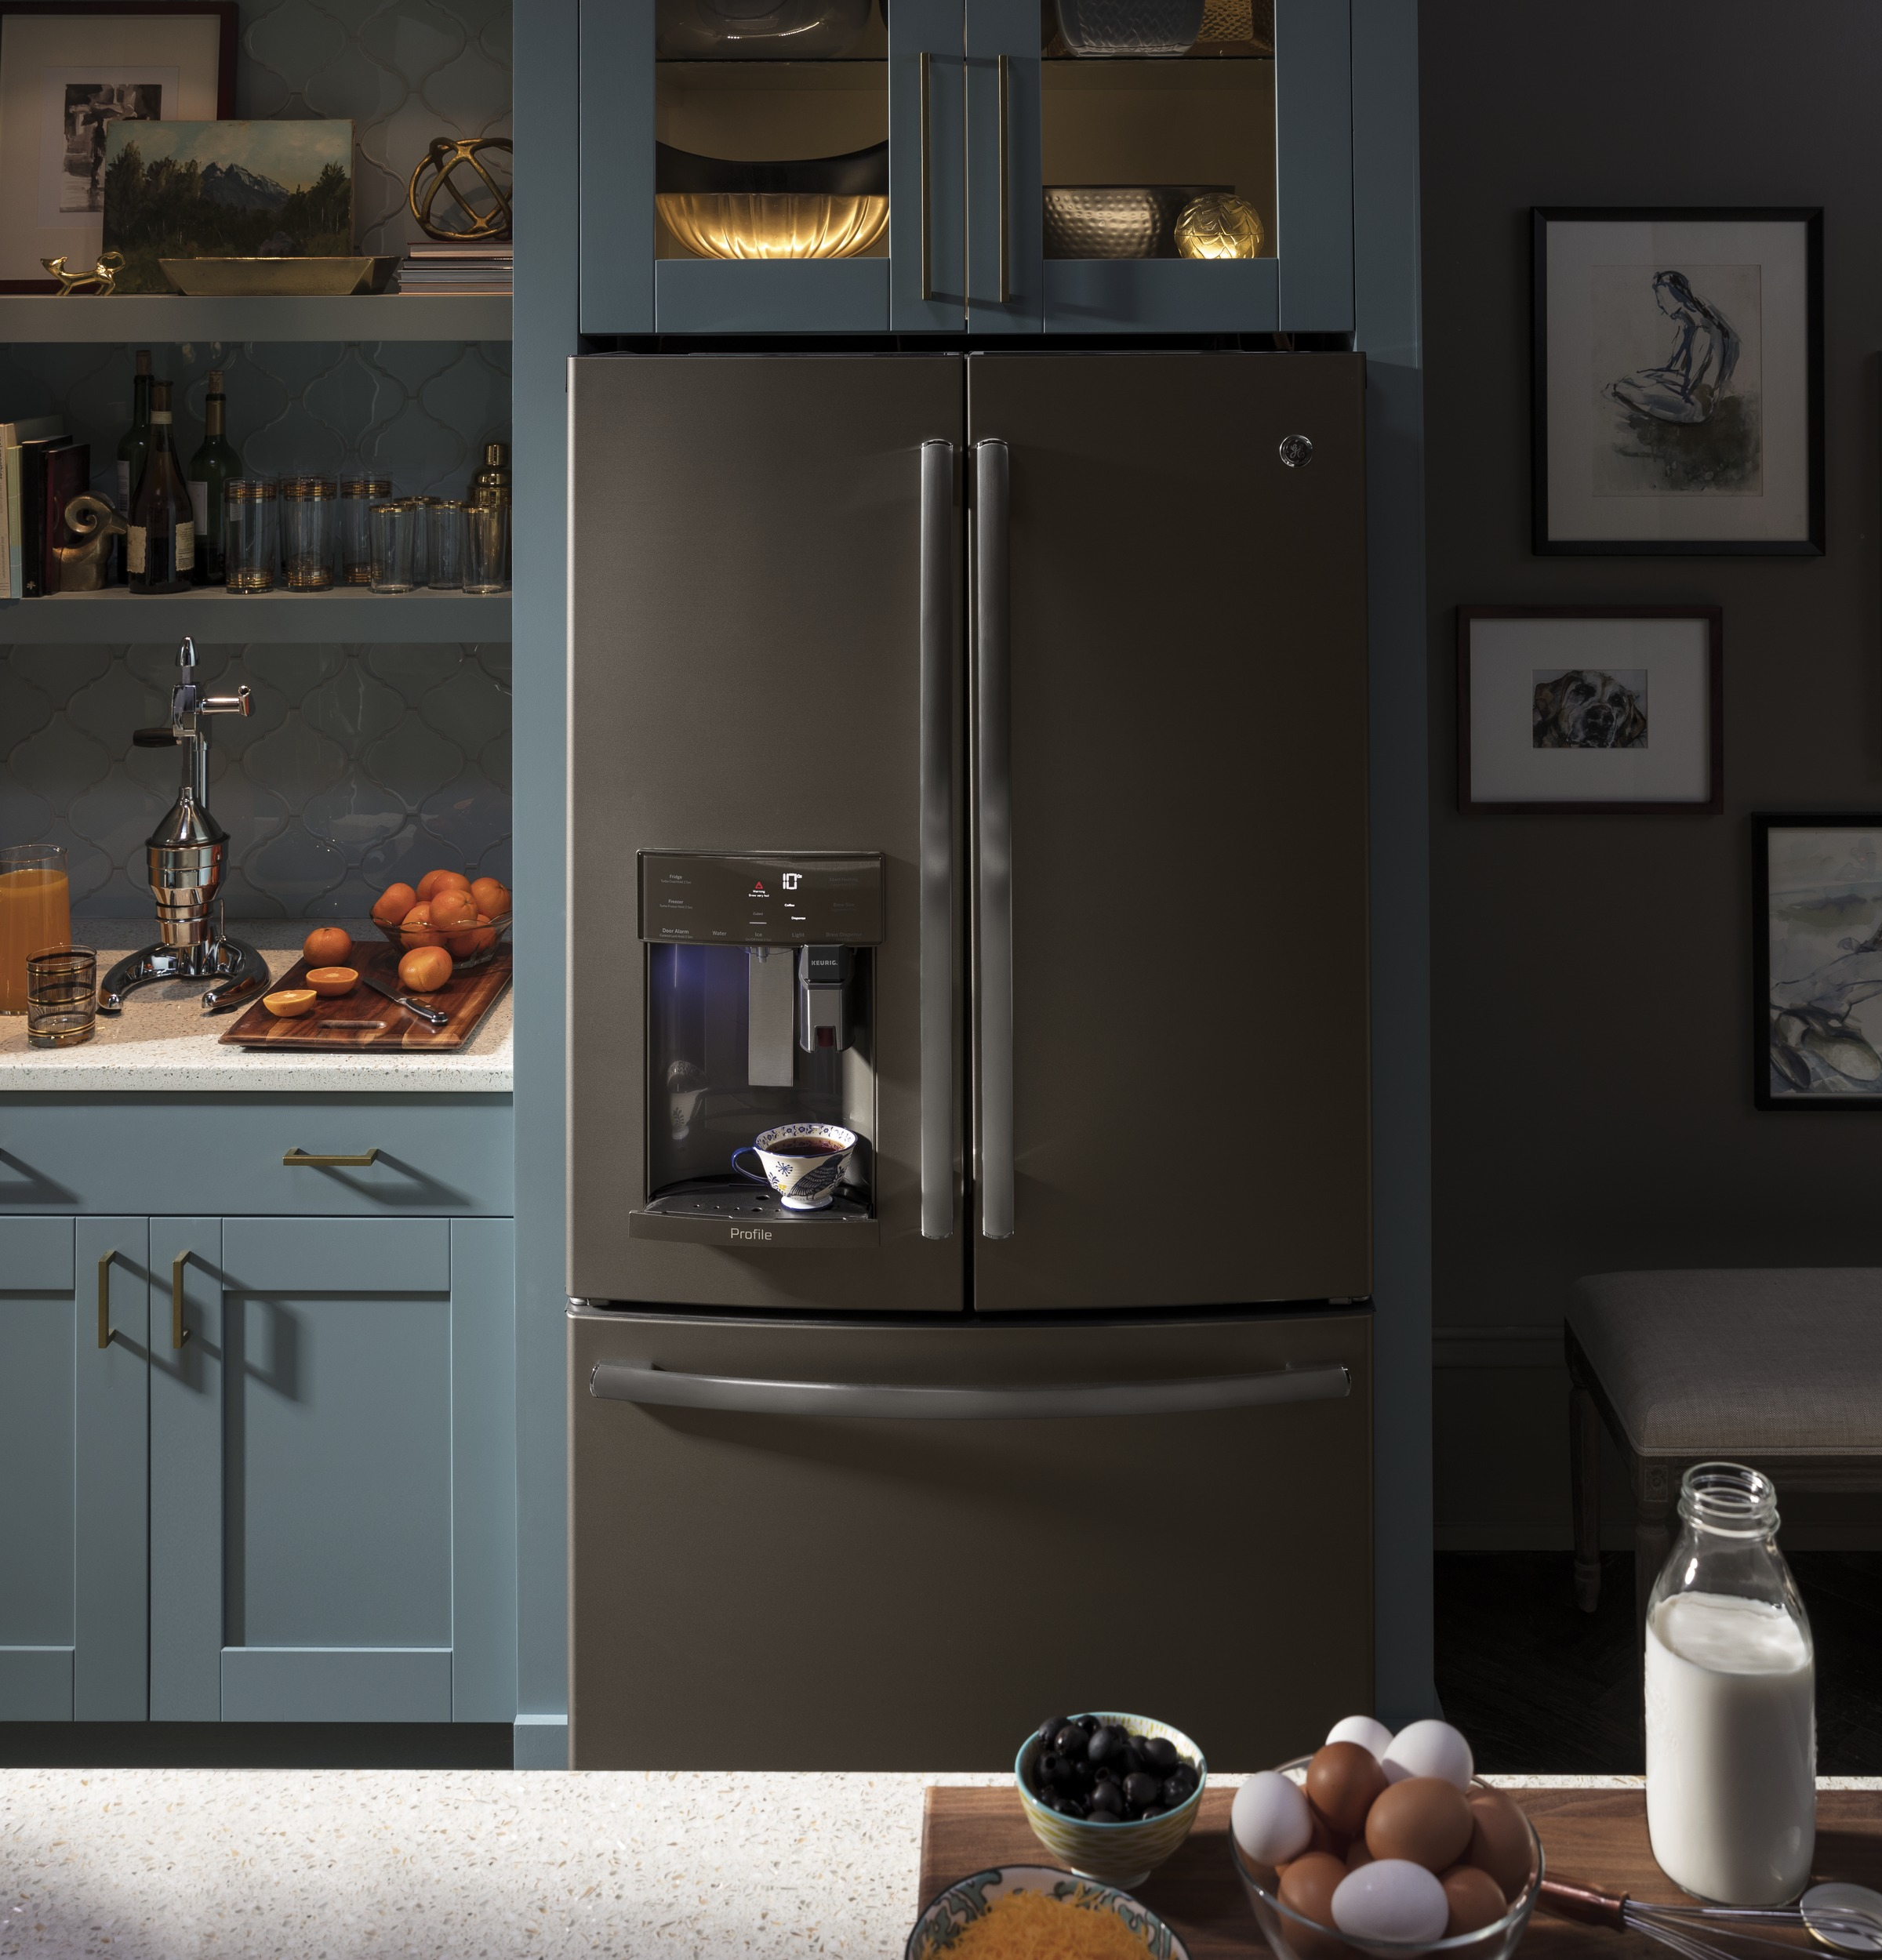 Model: PFE28PMKES | GE Profile GE Profile™ Series ENERGY STAR® 27.8 Cu. Ft. French-Door Refrigerator with Keurig® K-Cup® Brewing System